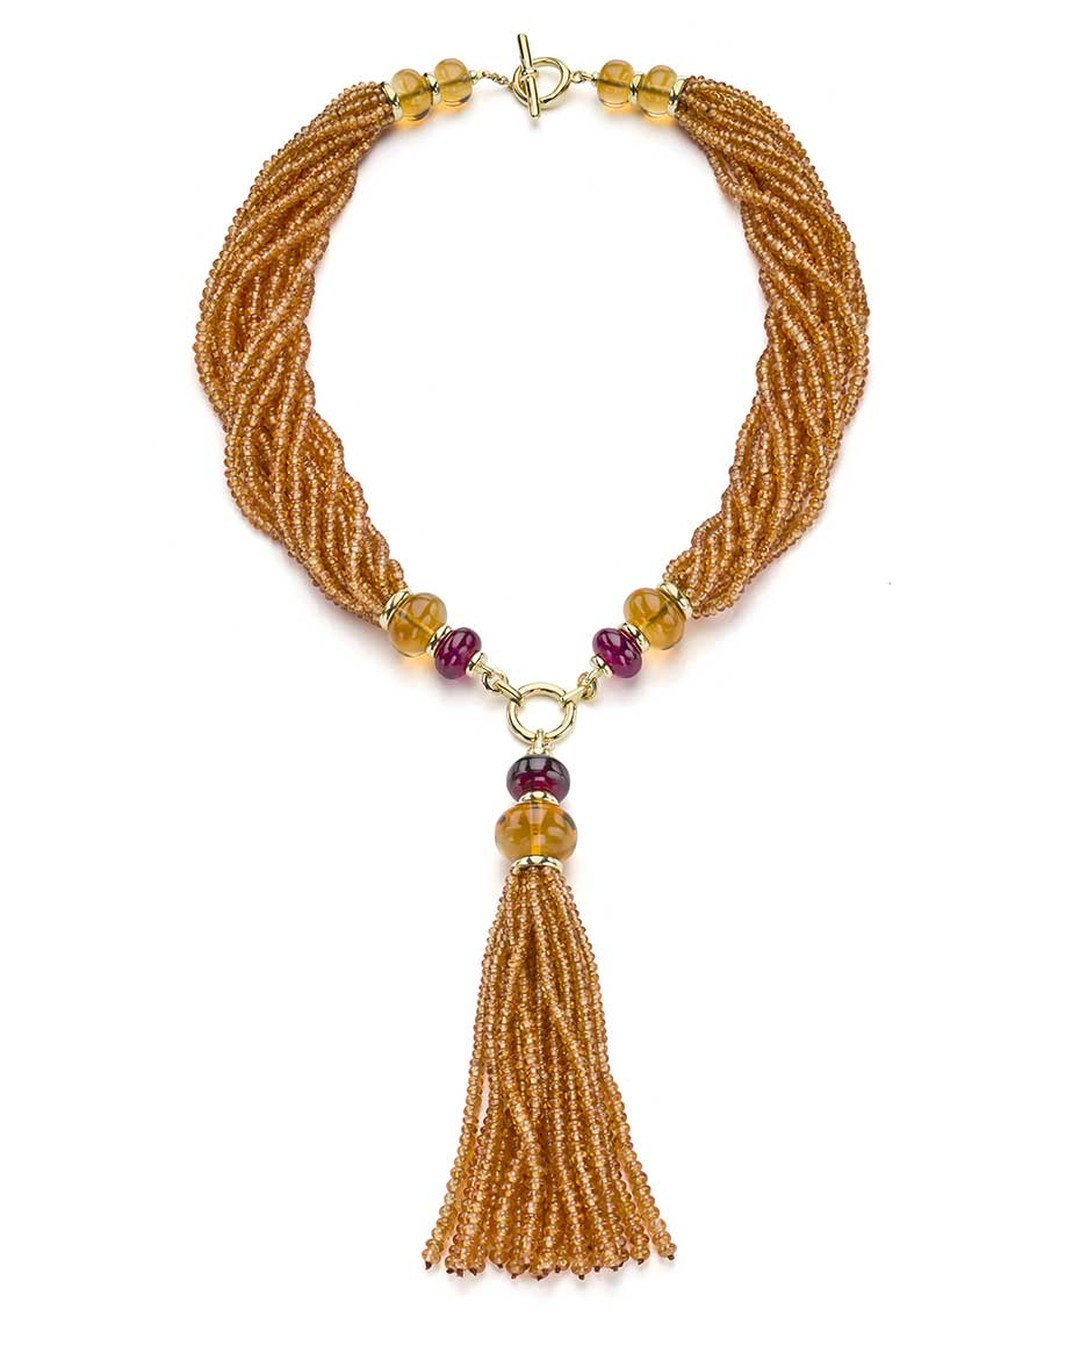 Goshwara tassel necklace set with 505.40ct mandarin garnet beads, accented by rubellite and citrine beads.